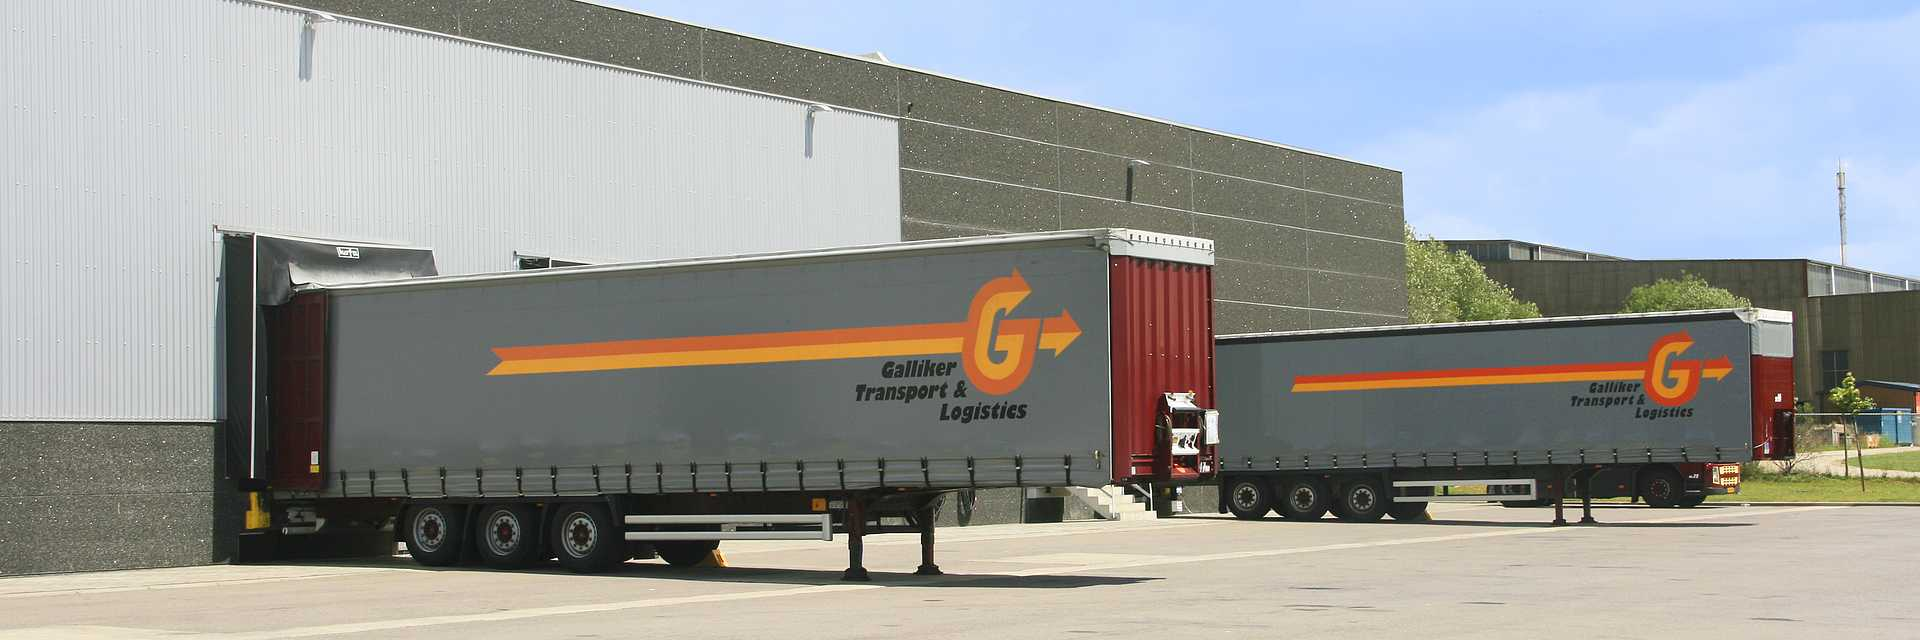 Galliker Transport Logistik TopPicture 139